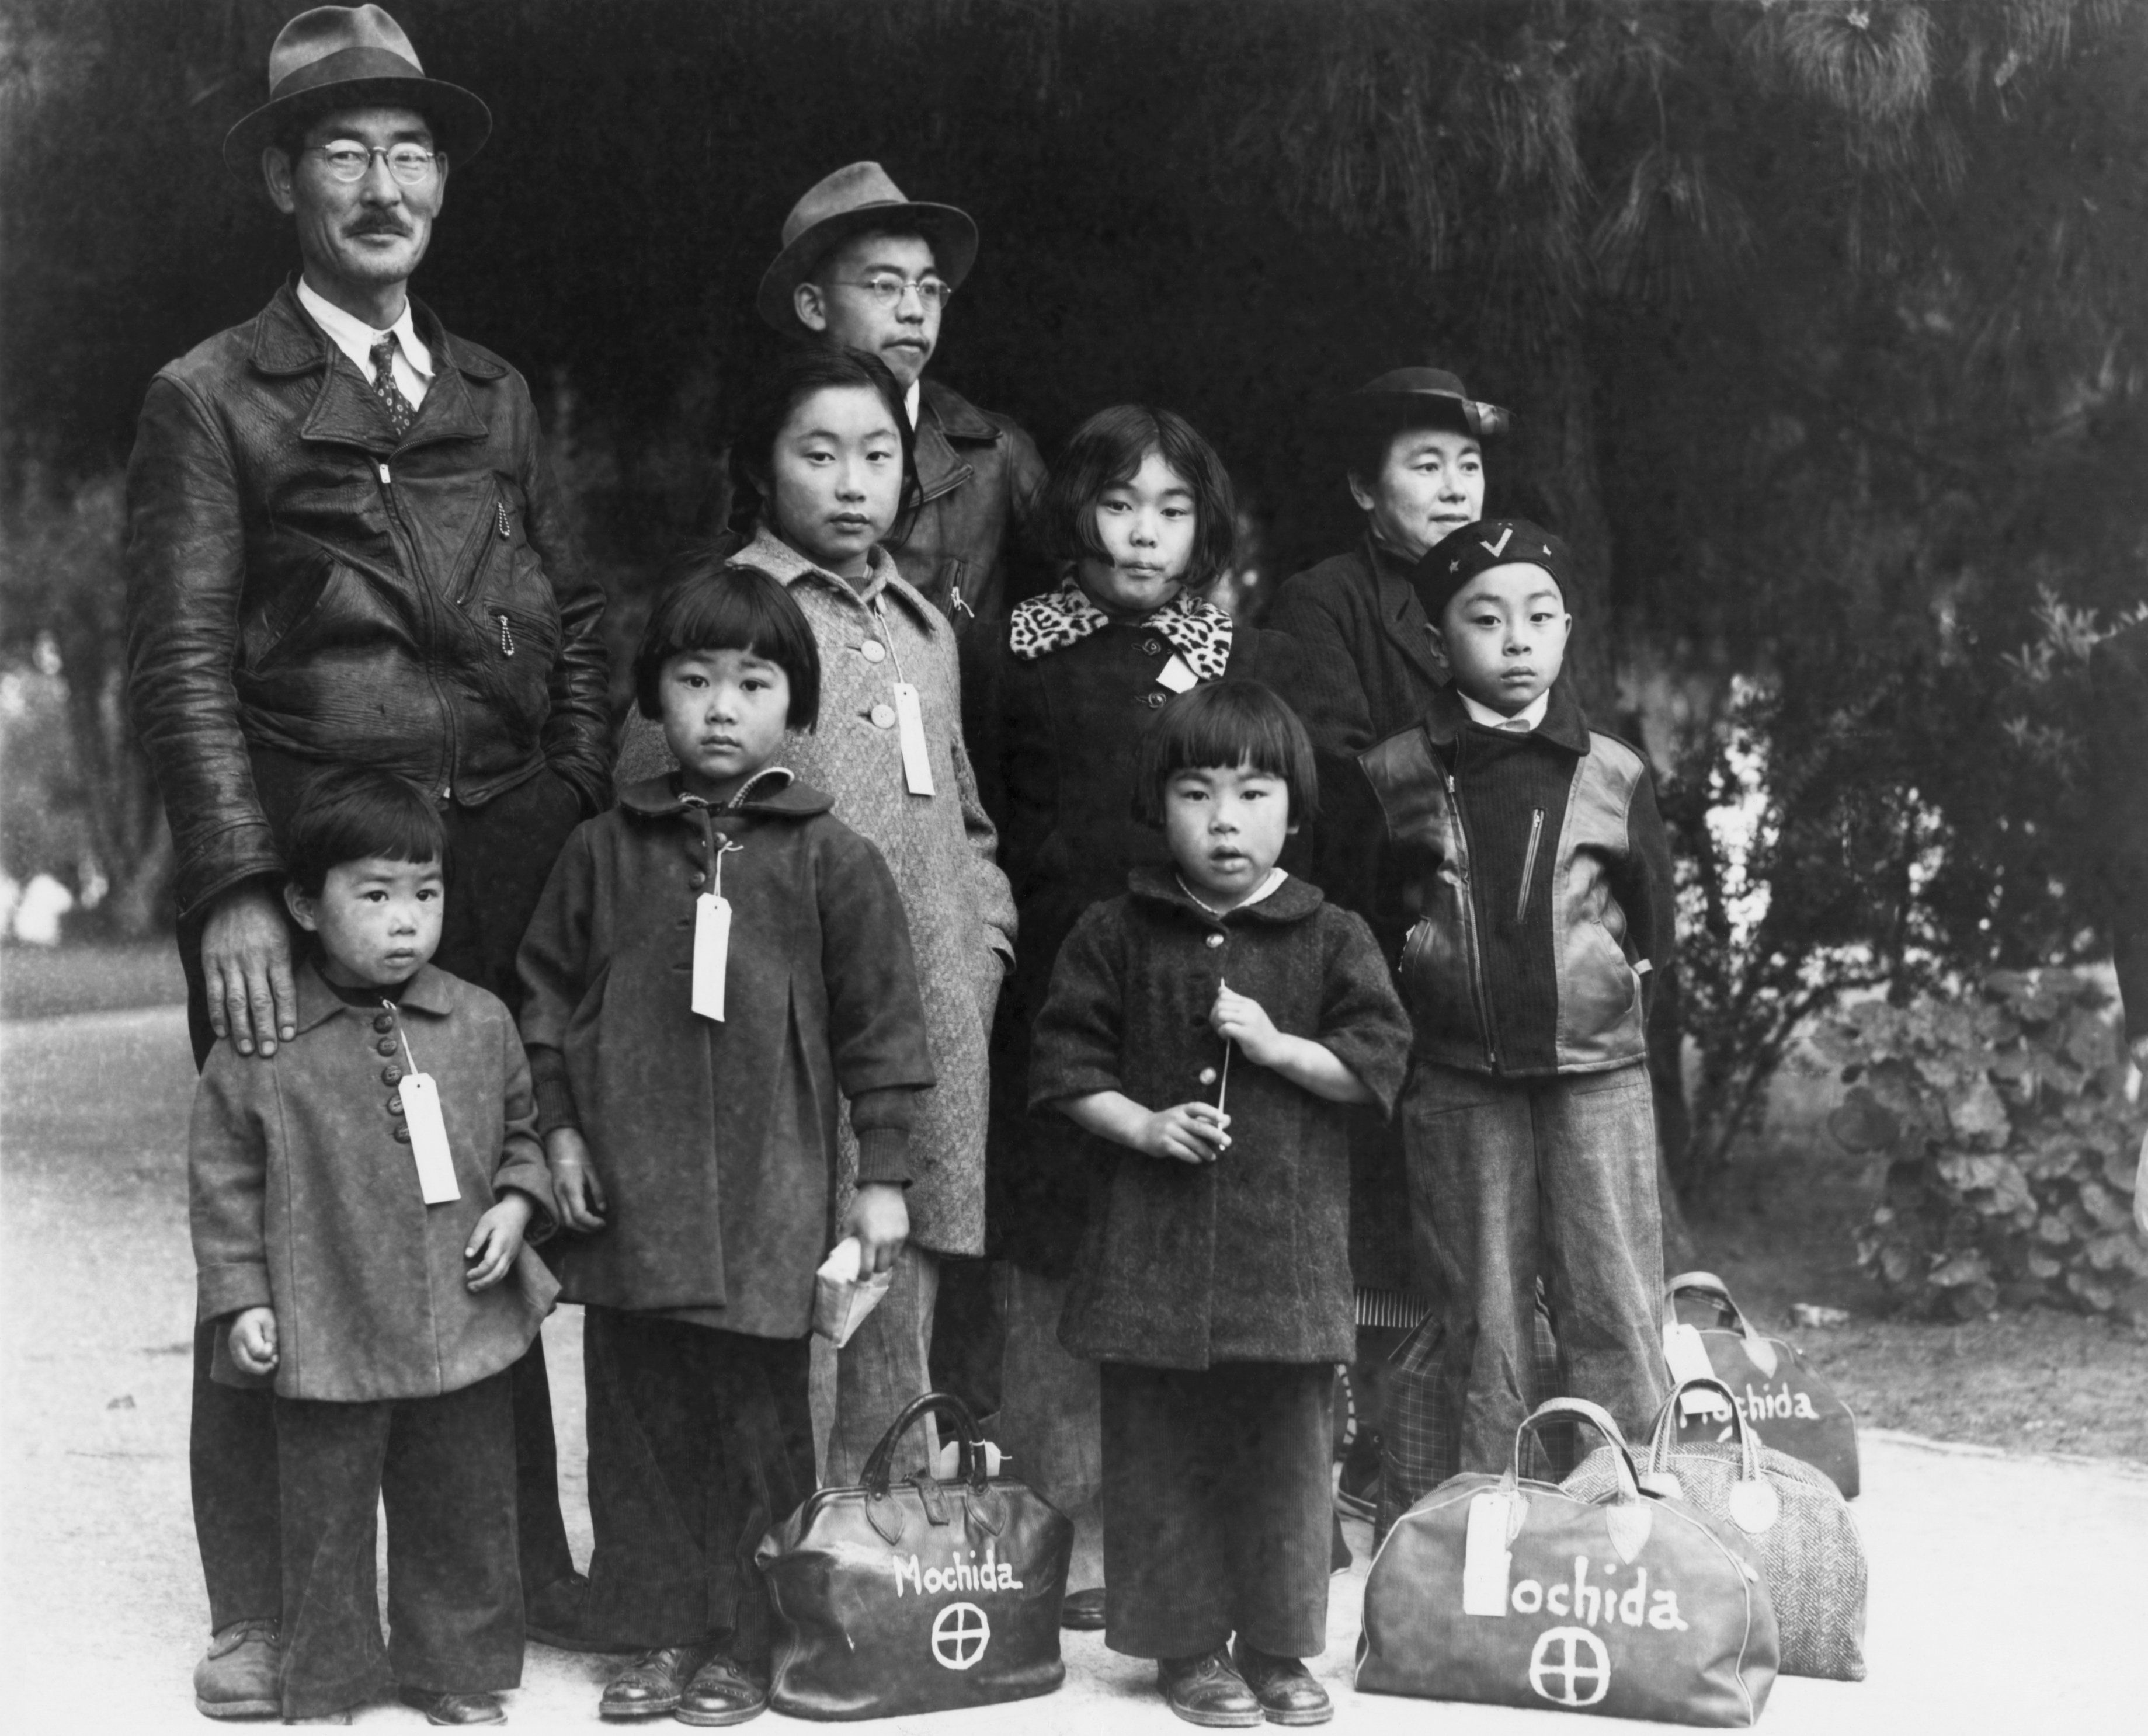 (Original Caption) Internment of Japanese-Americans during WWII: The Mochida family is 'Evacuated.' Photograph by Lange.